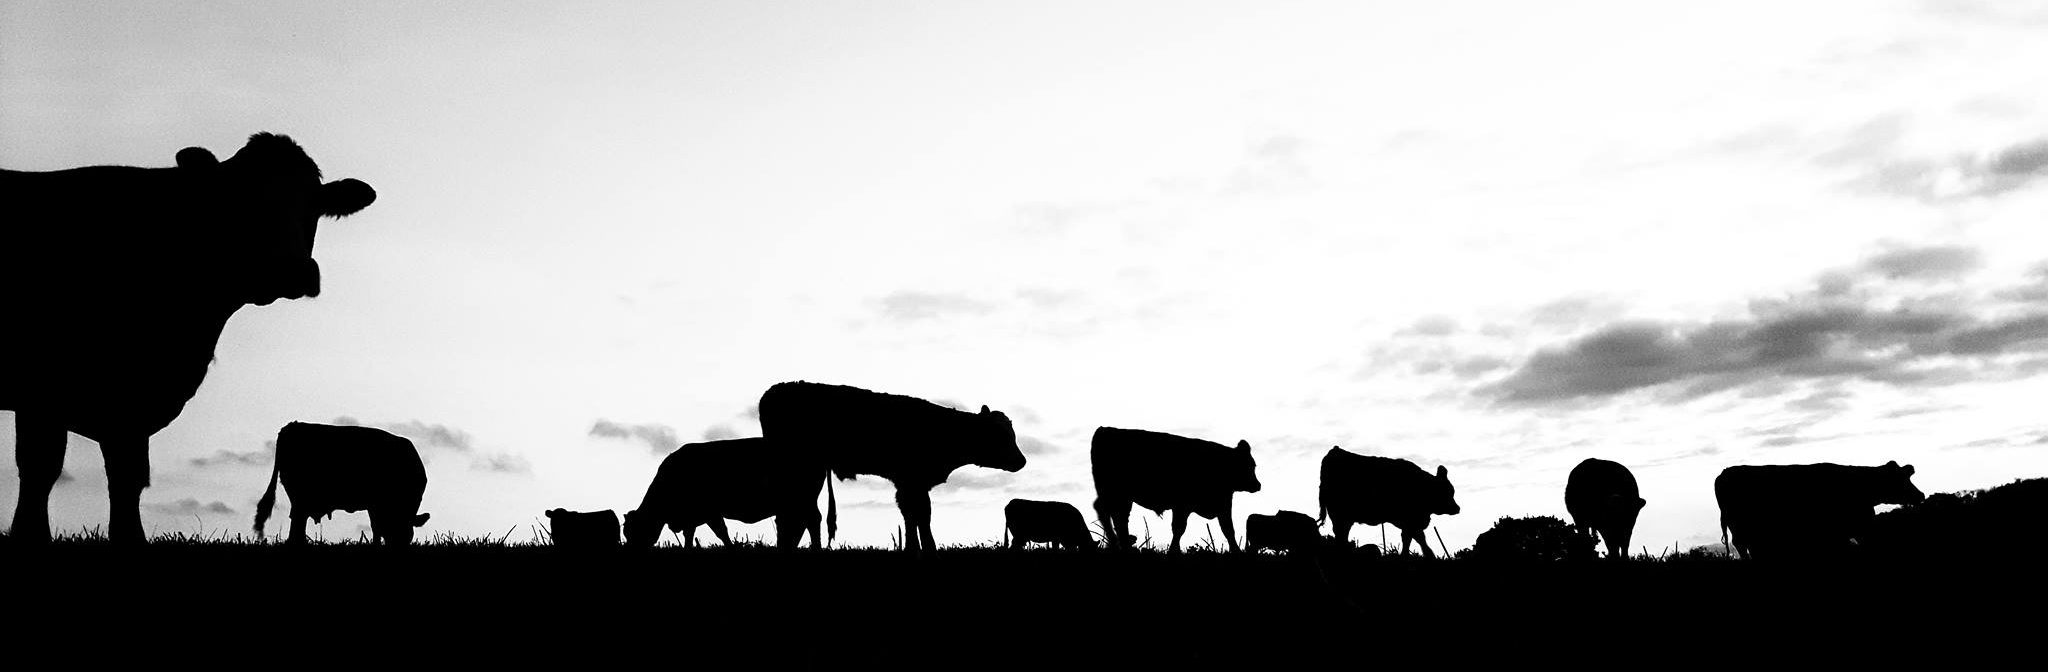 Lower-Dairy-Farm-Beef-Essex.jpg